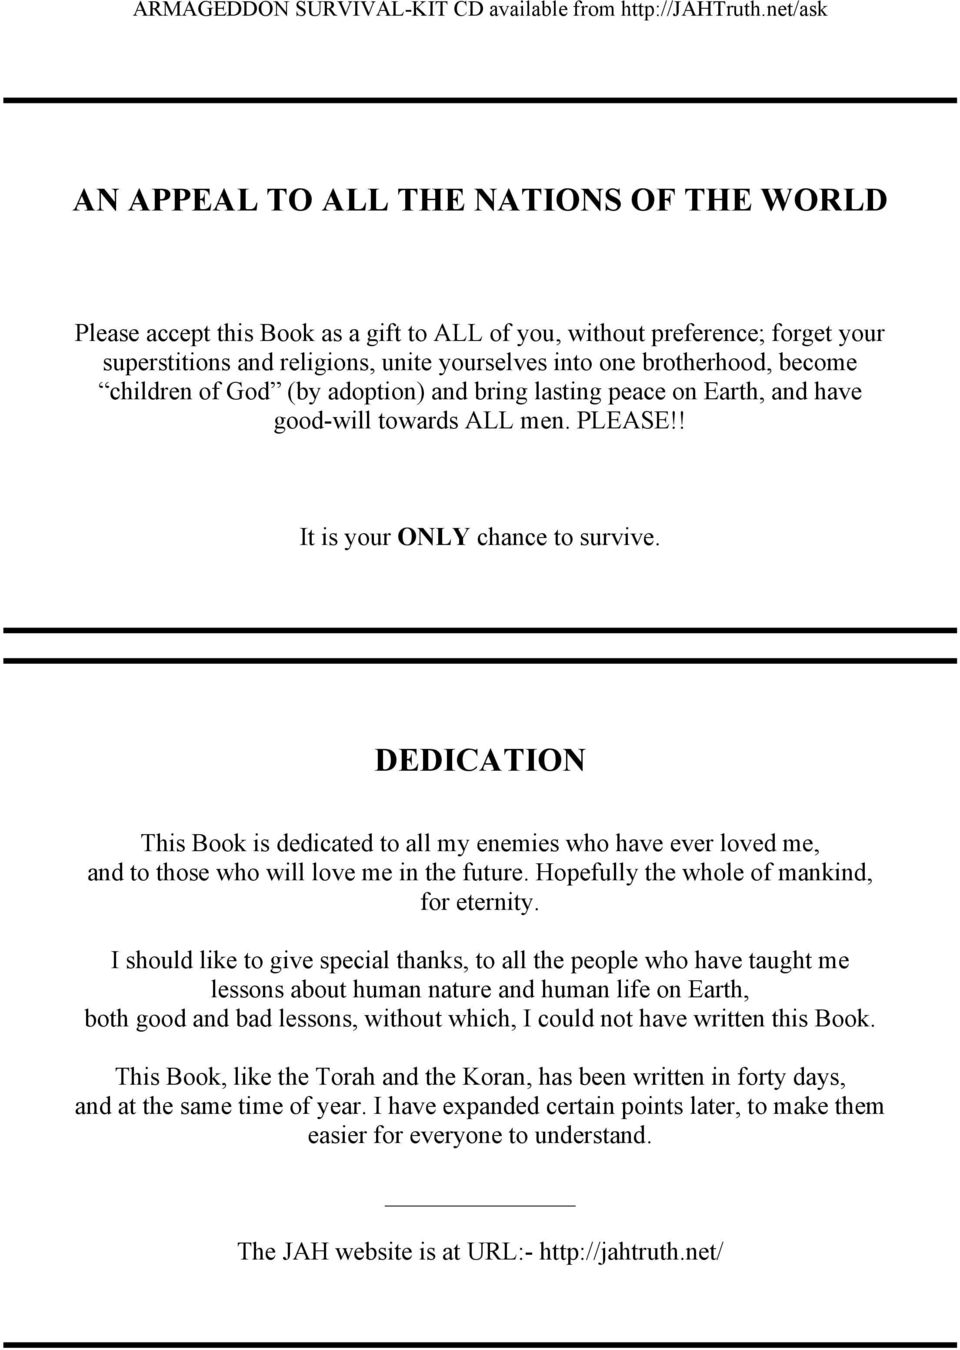 DEDICATION This Book is dedicated to all my enemies who have ever loved me, and to those who will love me in the future. Hopefully the whole of mankind, for eternity.